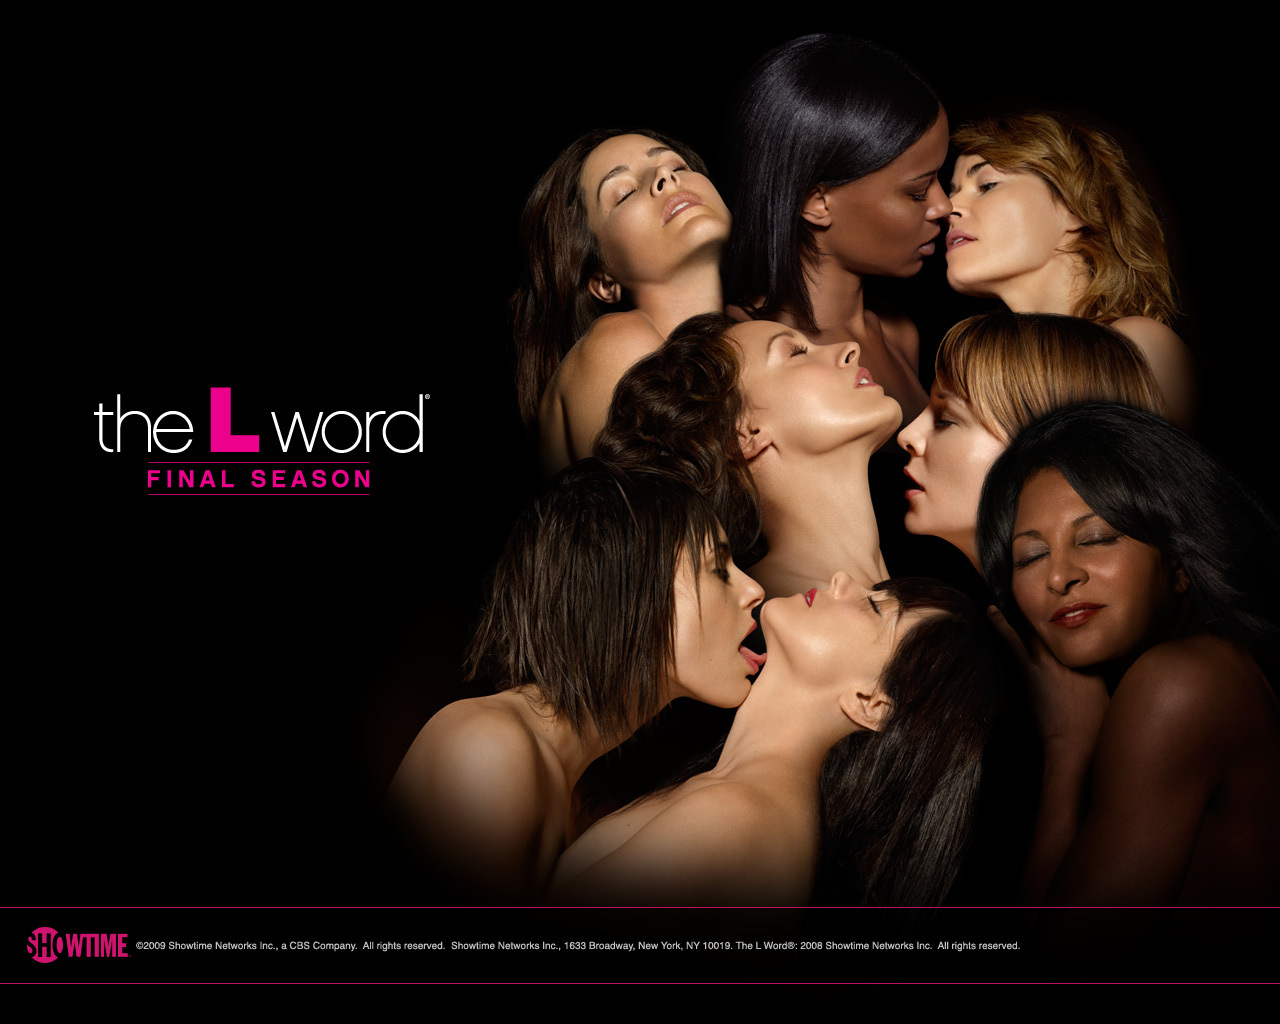 the l word wallpaper shane